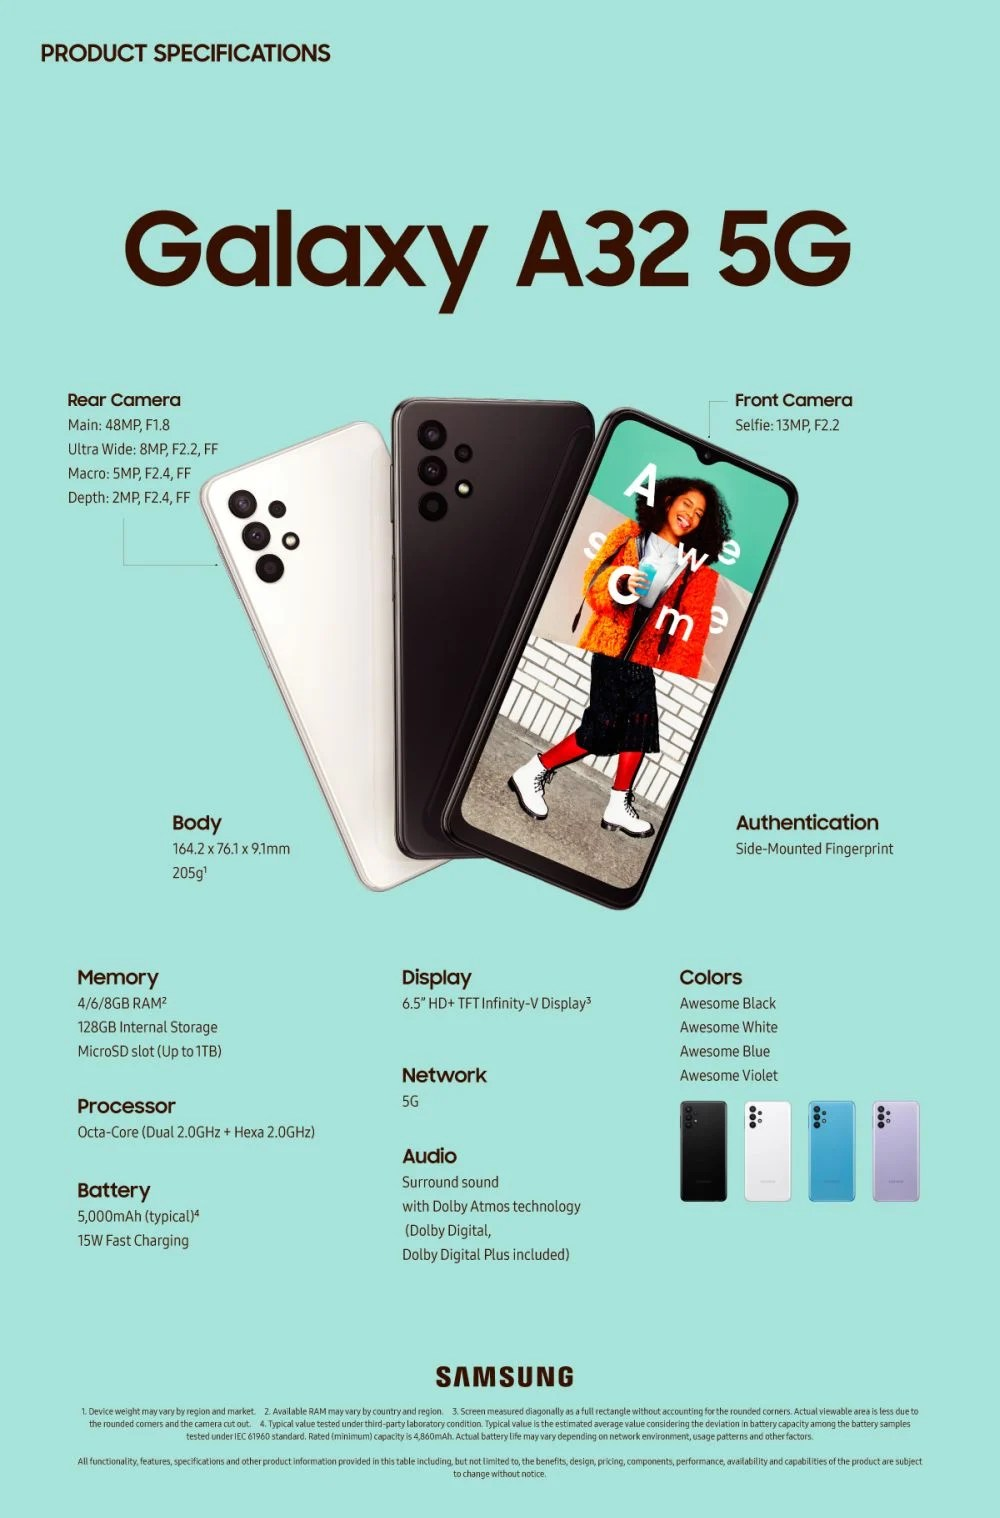 Samsung's cheapest 5G phone of 2021, the Galaxy A32 5G, is official